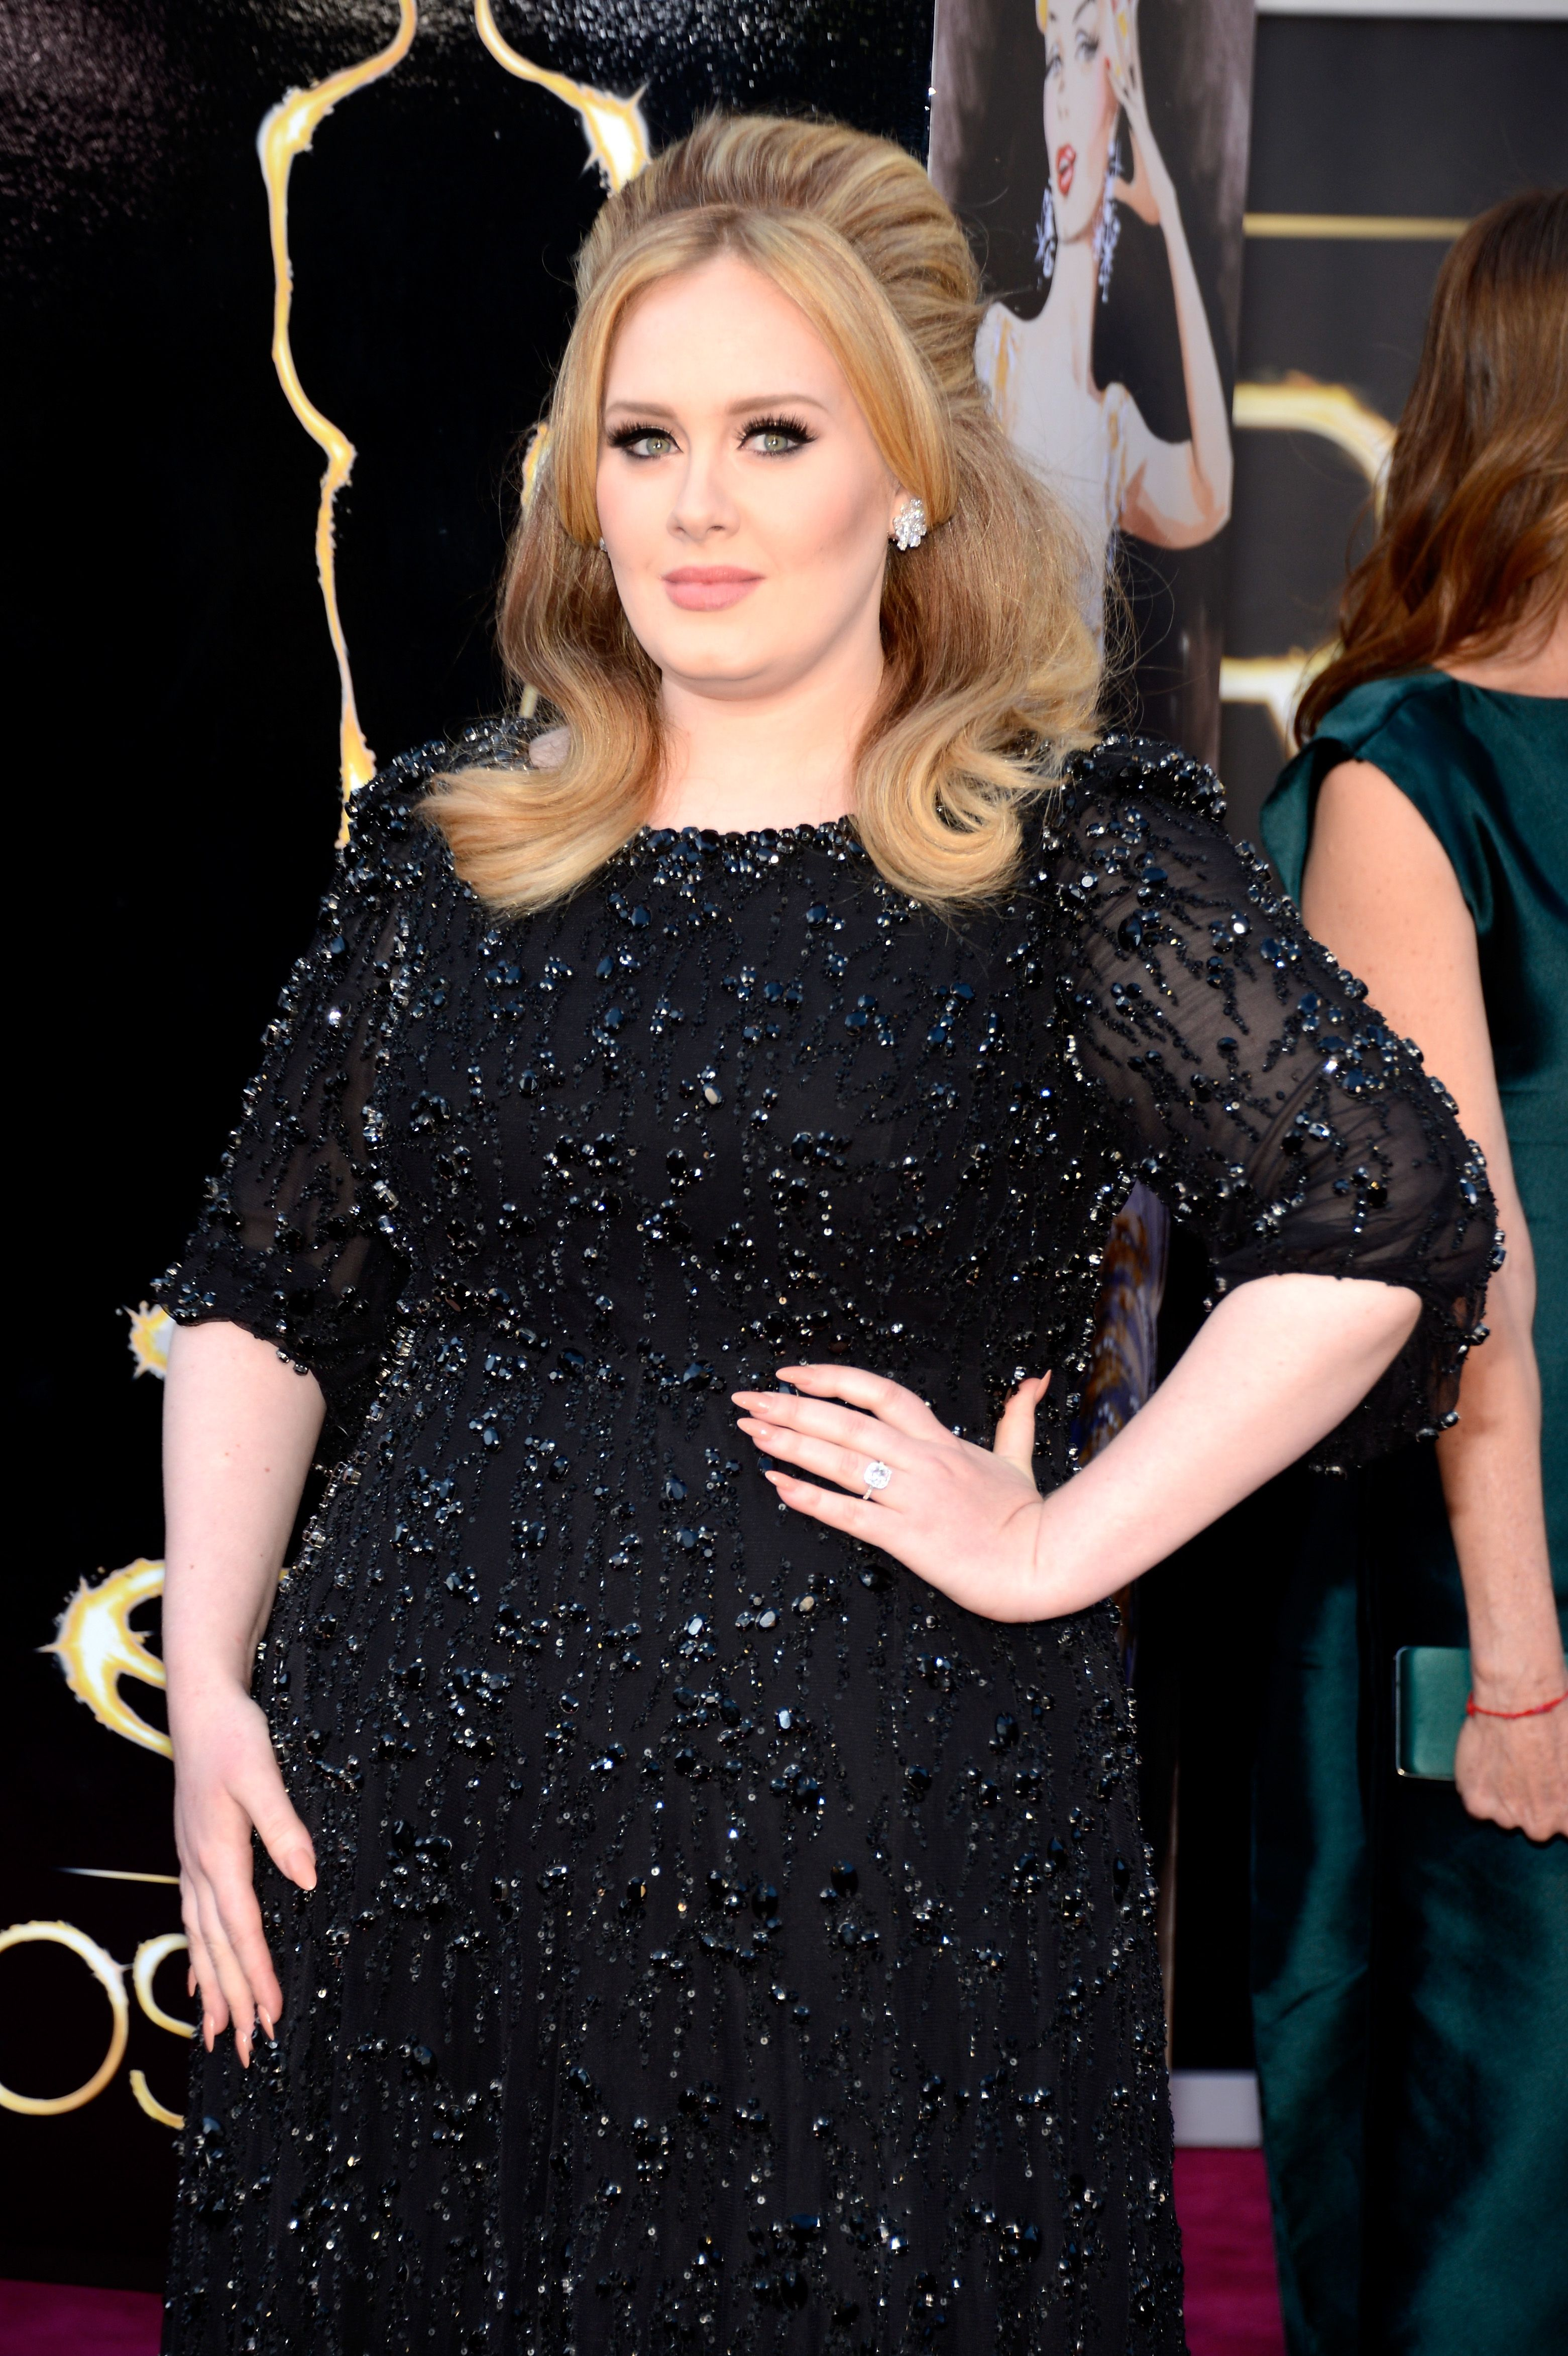 Singer Adele at the Oscars held at Hollywood & Highland Center in Hollywood, California | Photo: Kevin Mazur/WireImage via Getty Images